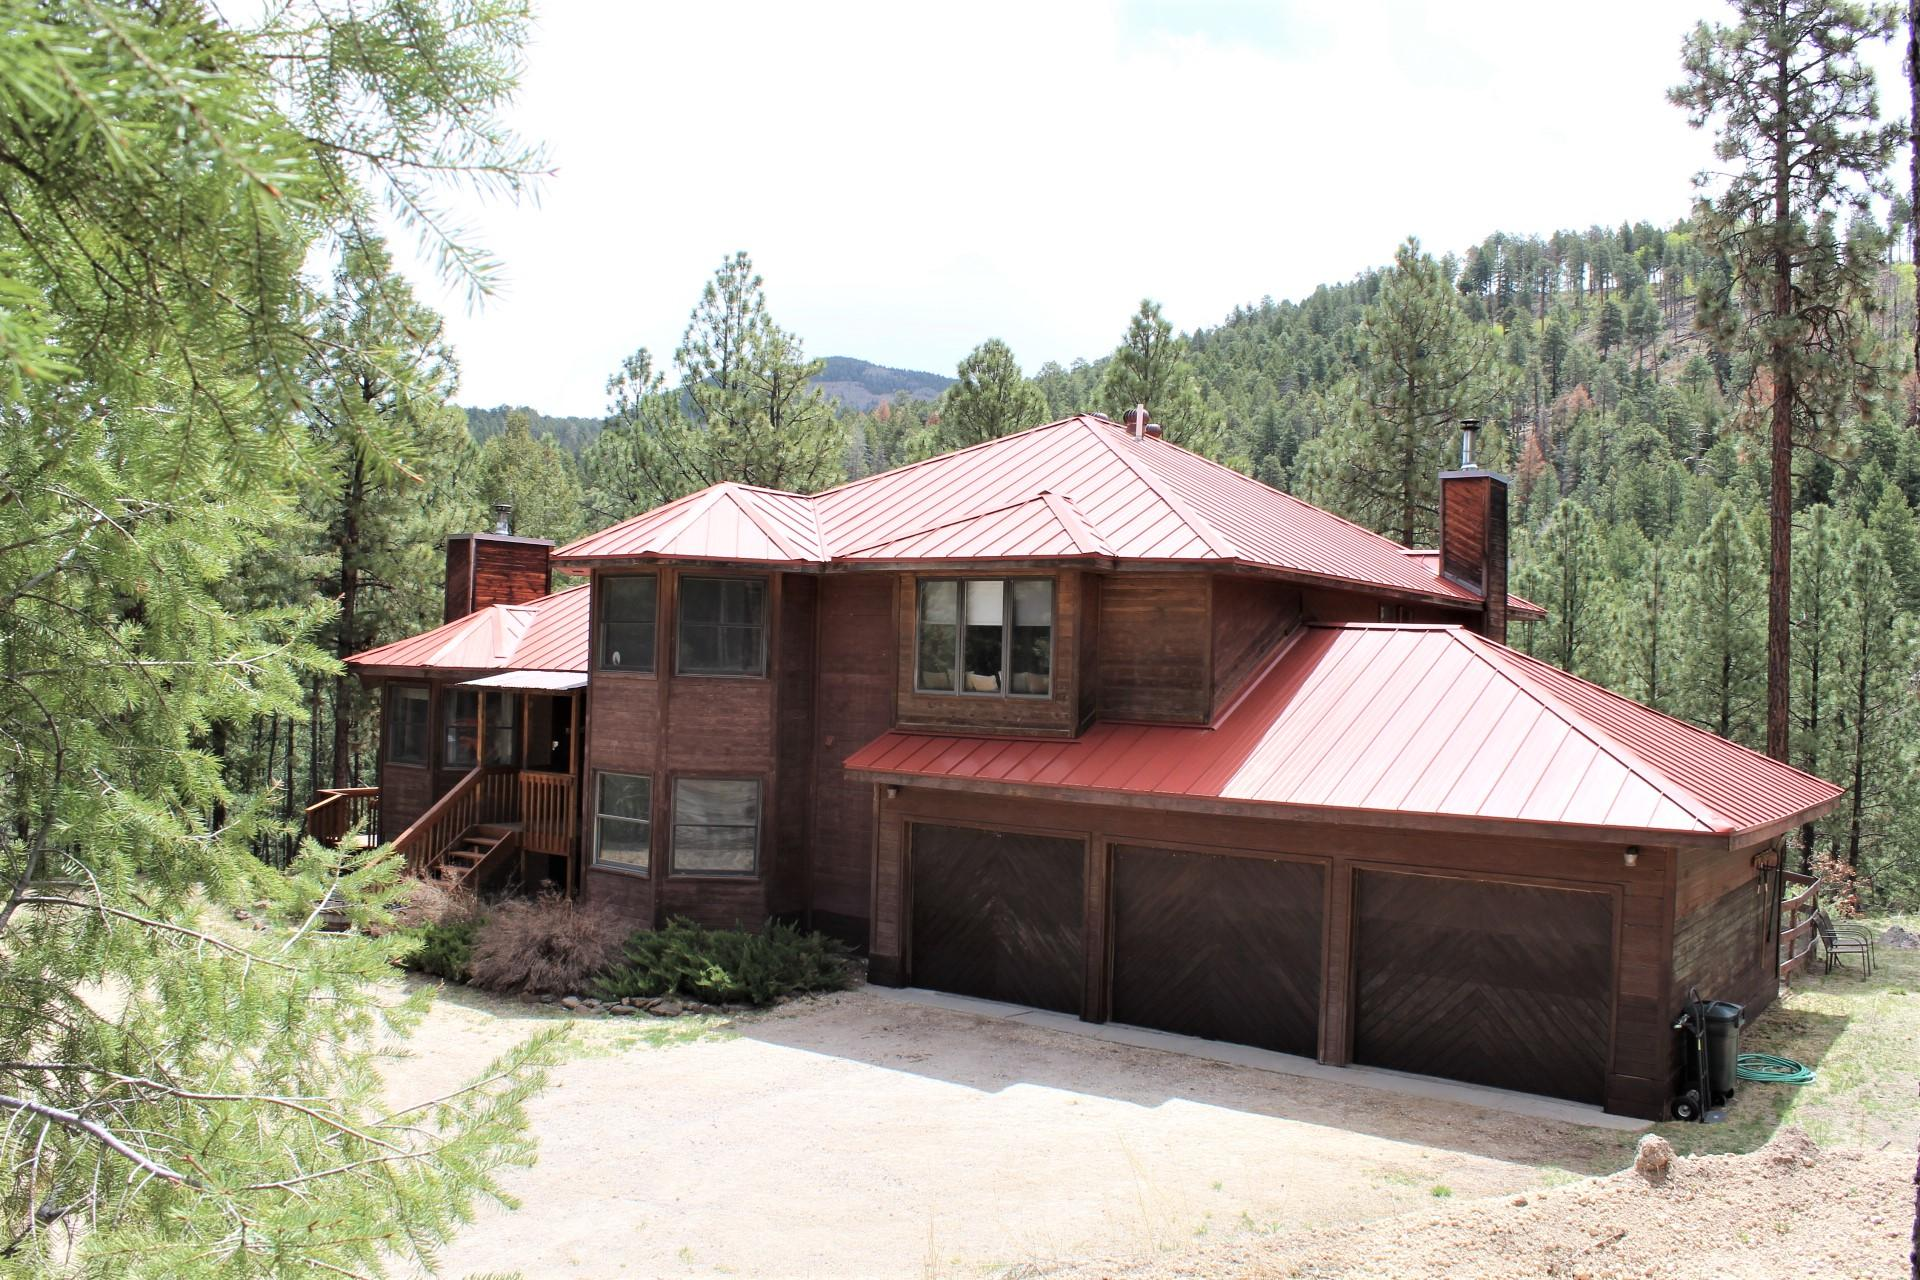 Jemez Mountain Hi-iiiigh!! Seriously...no kidding...up where you feel like you have the forest all to yourself! Quiet and Delightful!! Unique Custom Home with room for everyone and everything they need to make a fabulous life in the mountains! Over 4000 square feet and a 3 car garage on over 5 acres of beautifully forested land. Sweet, well-arranged kitchen has eat-at-bar, dining area, loads of cabinet/pantry space, double oven and deck access. Formal Dining and Den access deck too! You're gonna love the view from the hot tub perch! Master has huge lovely bath with step in shower and jetted garden tub, sitting room/office and super sweet balcony for some late night star-gazing! Basement Rec-Room and pool table can stay! 3 car garage for toy storage and workshop! Unlimited Possibilities!!